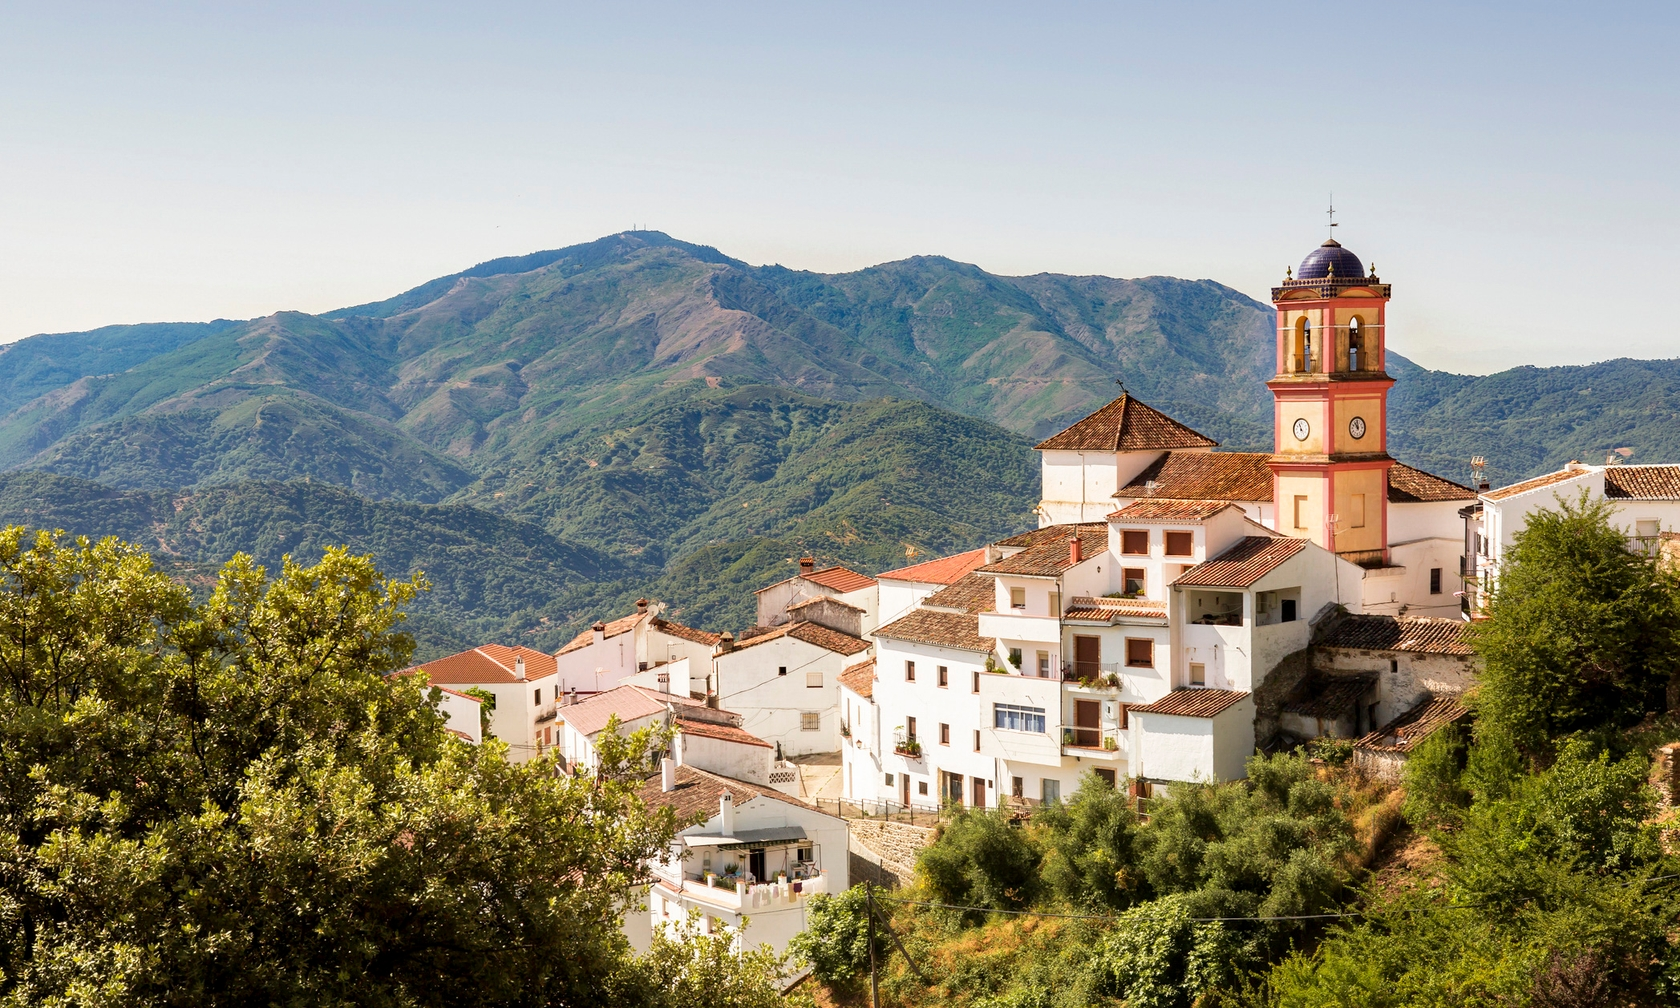 Holiday rentals in Andalusia